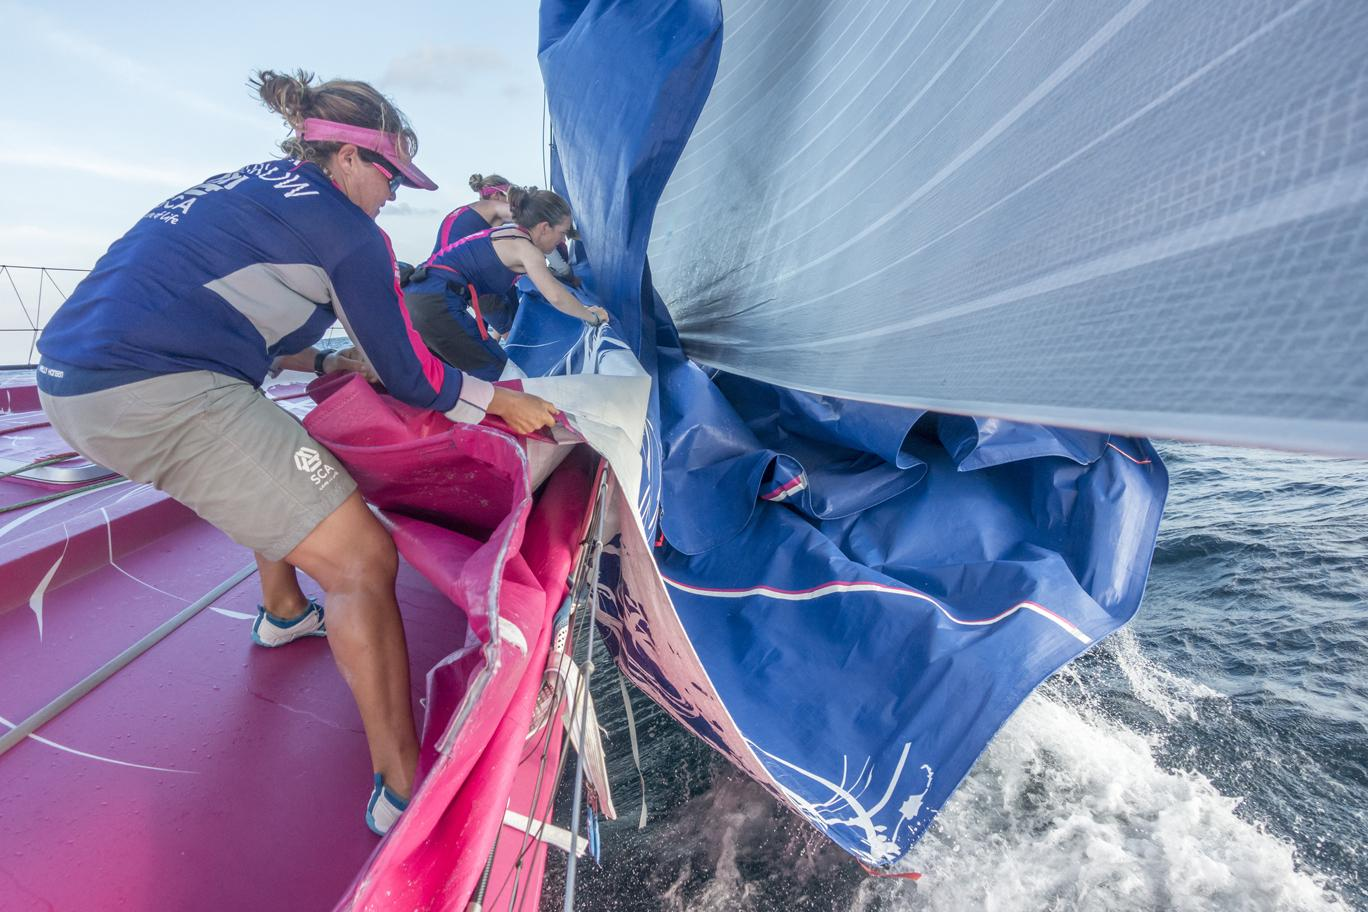 January 19, 2015. Day 16 of Leg 3 to Sanya onboard Team SCA. Sally Barkow helps pull the J1 sail on board after the Team changes sails.